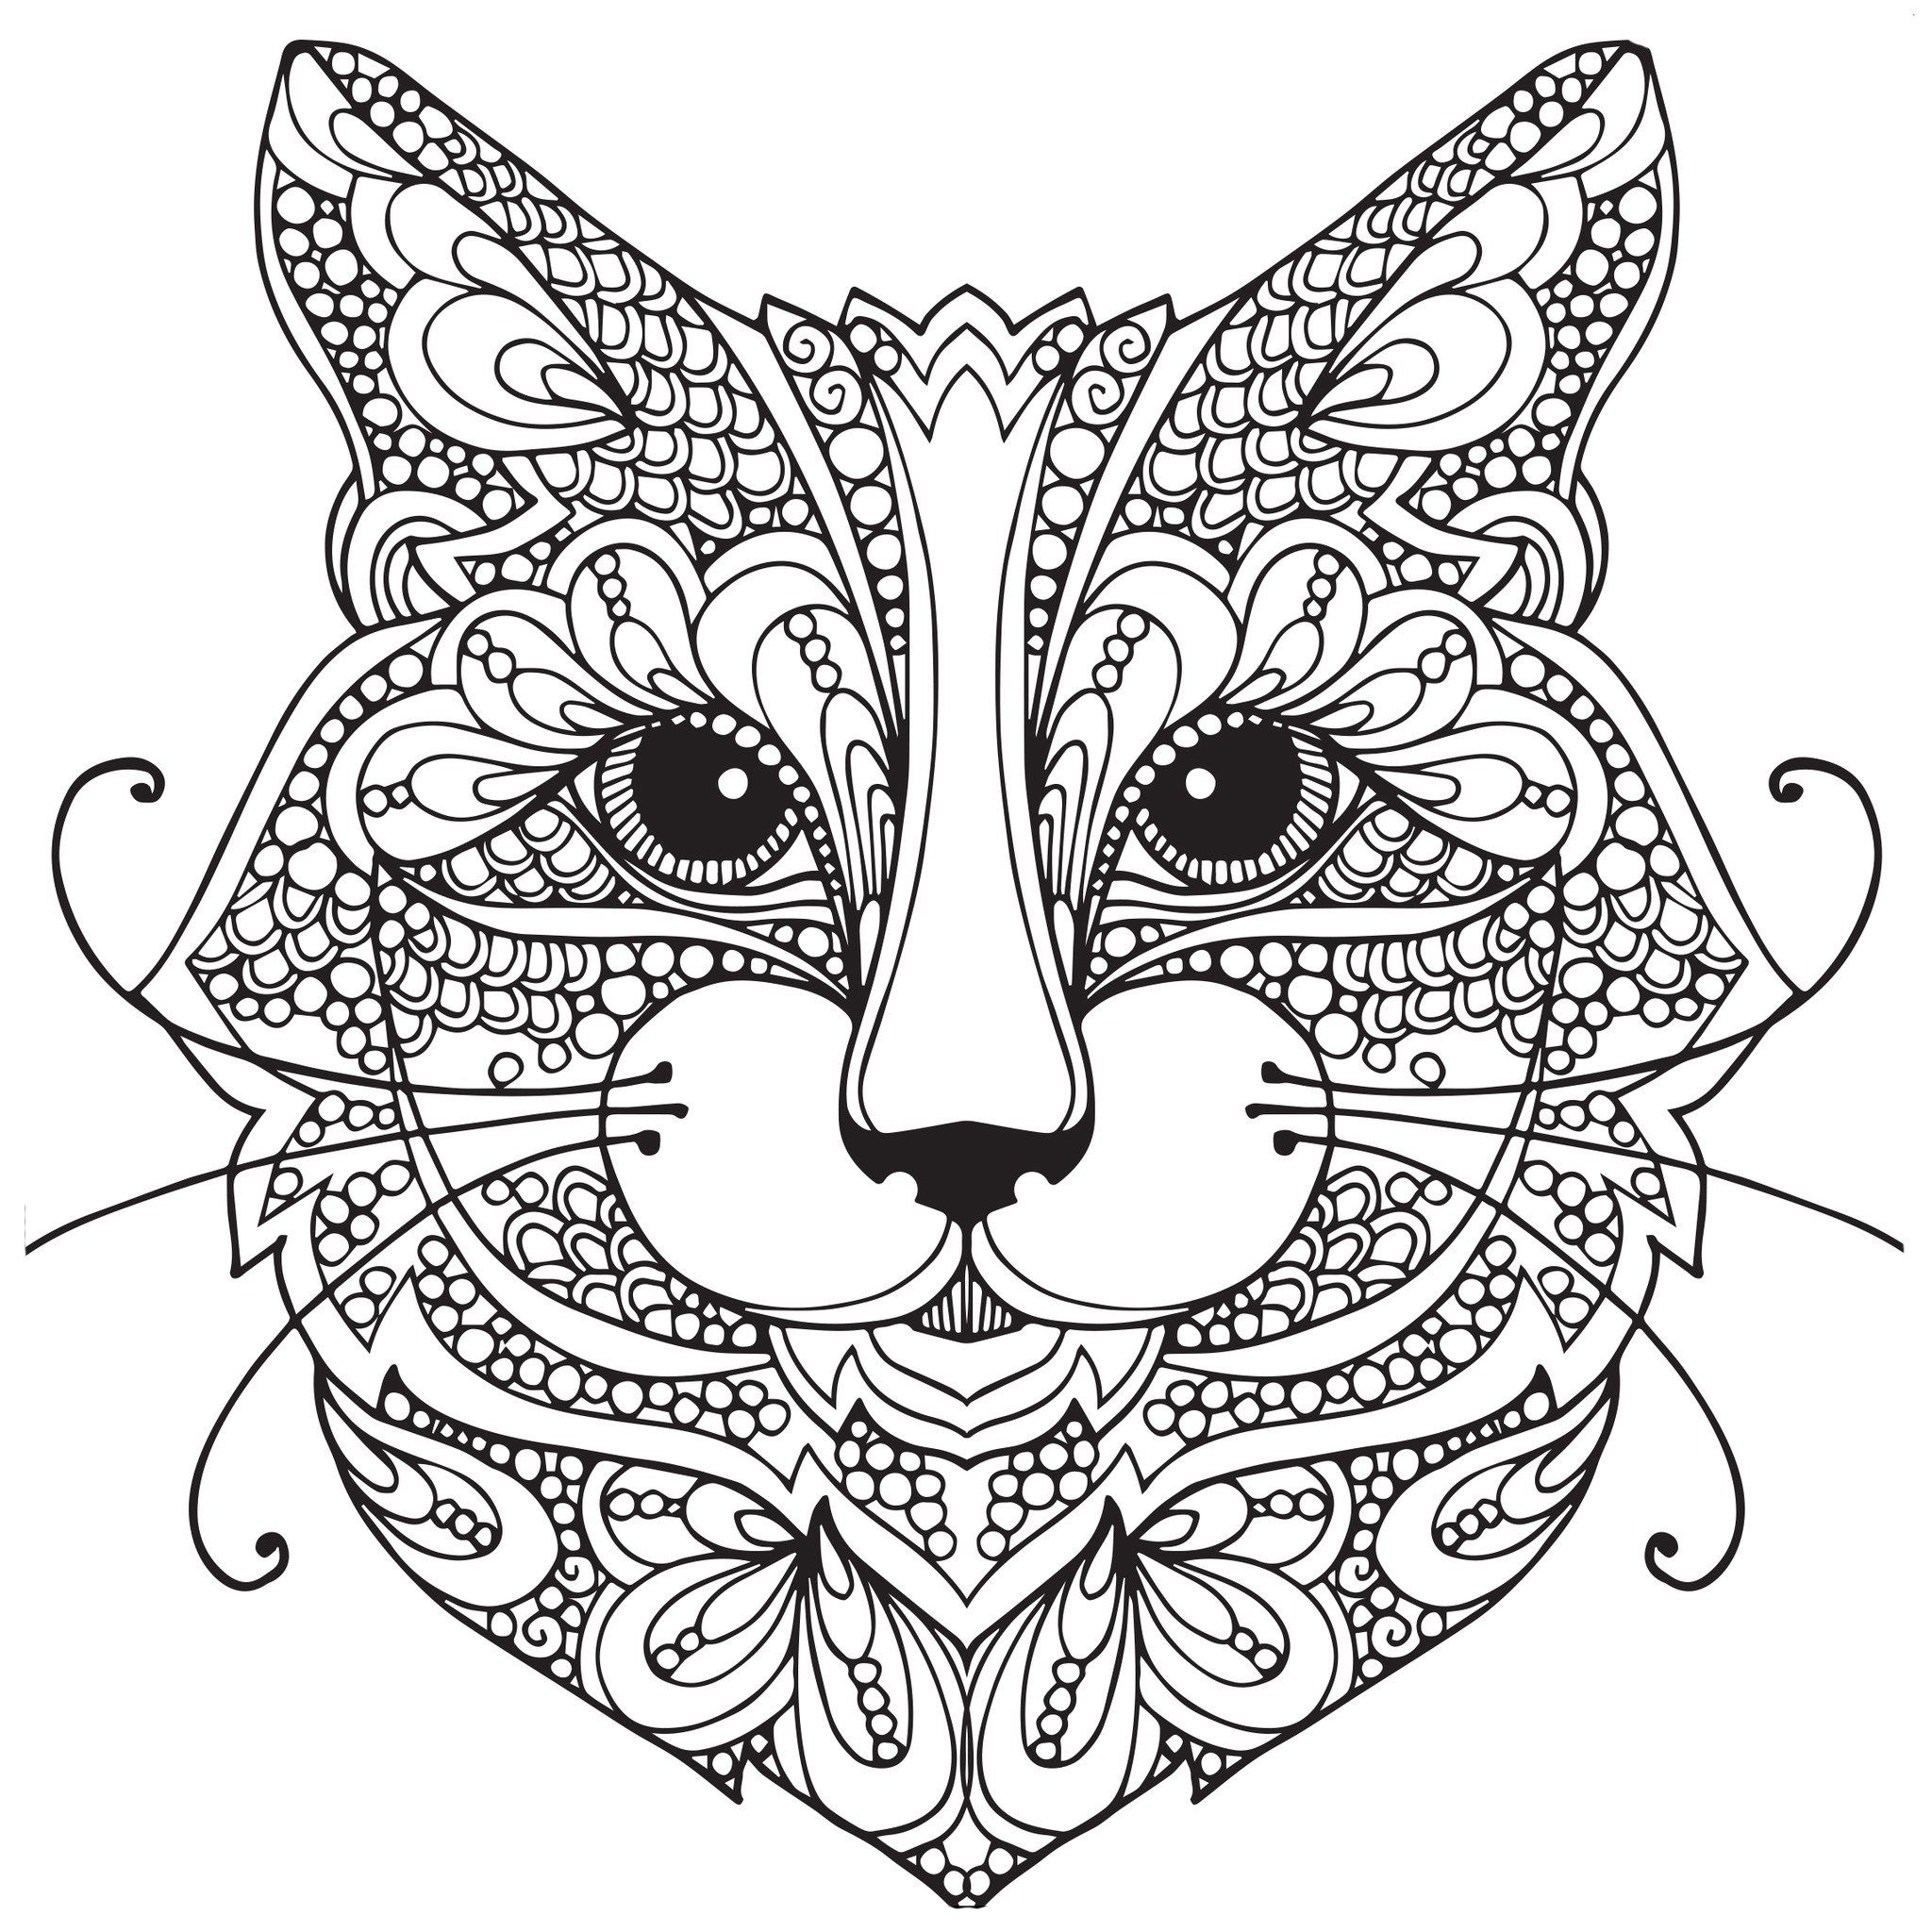 Coloring Pages Of Cats Adult Coloring Pages Cat 1 Coloring Pages Pinterest Ruva